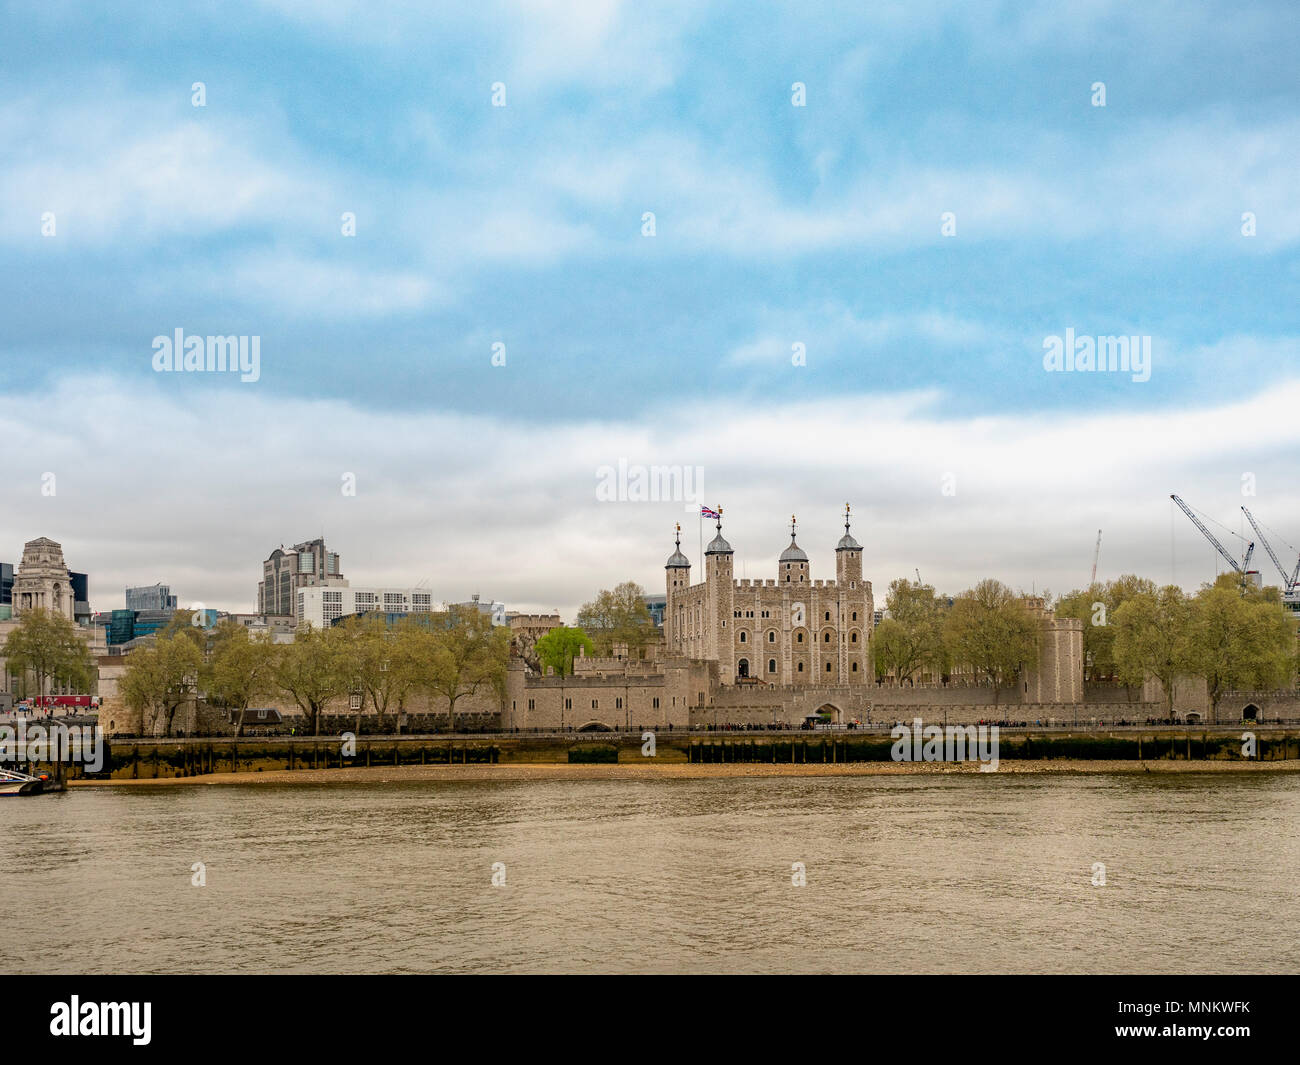 The Tower of London and River Thames, London, UK. Stock Photo